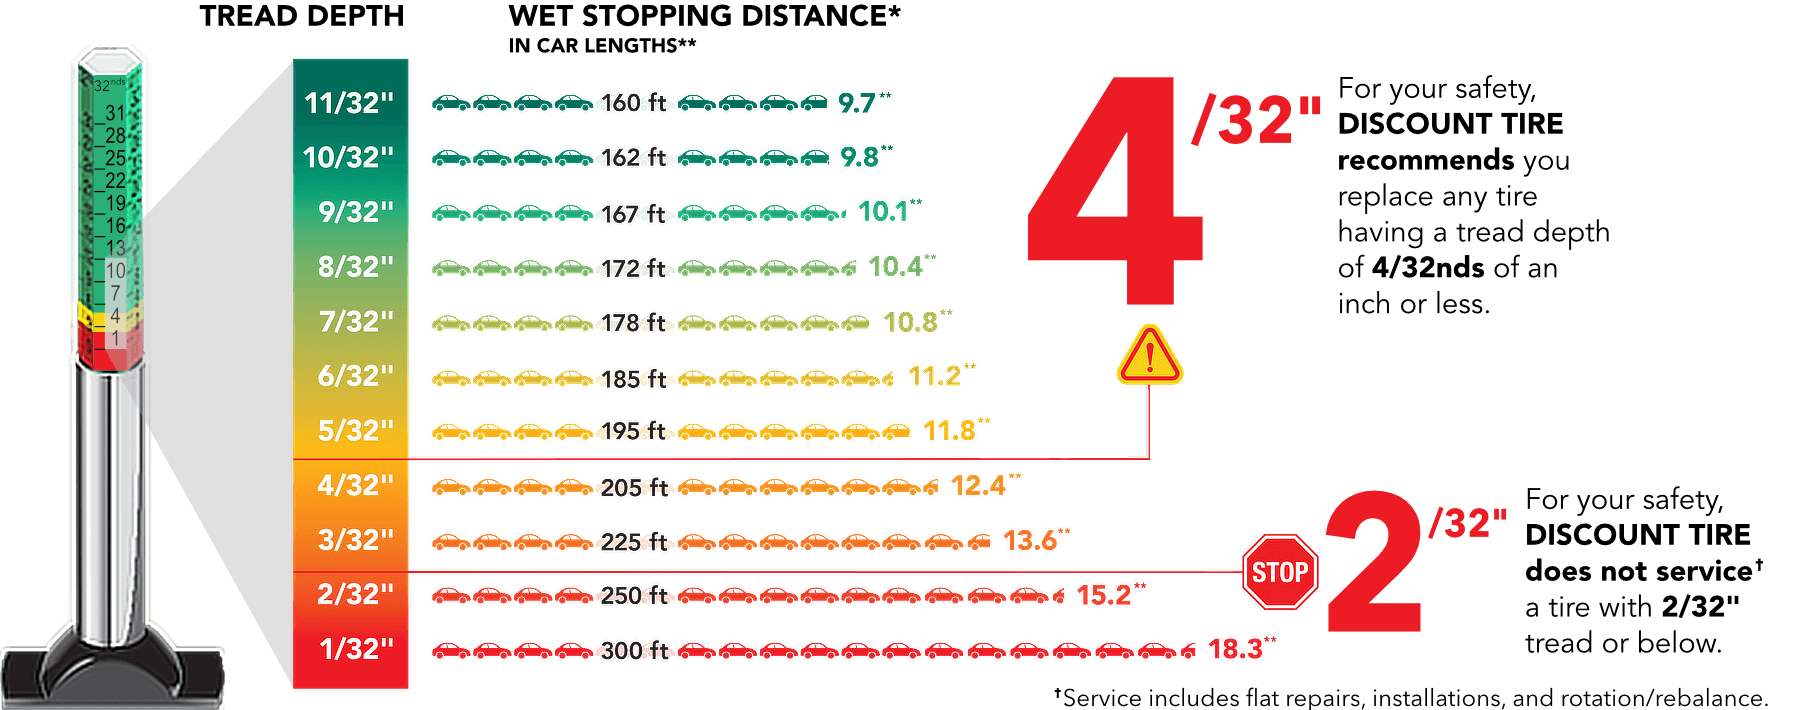 As You Can See On The Stopping Distance Chart Tread Depth Effects How Well Your Vehicle Stop Especially Wet Roads It Is Very Important To Be Aware